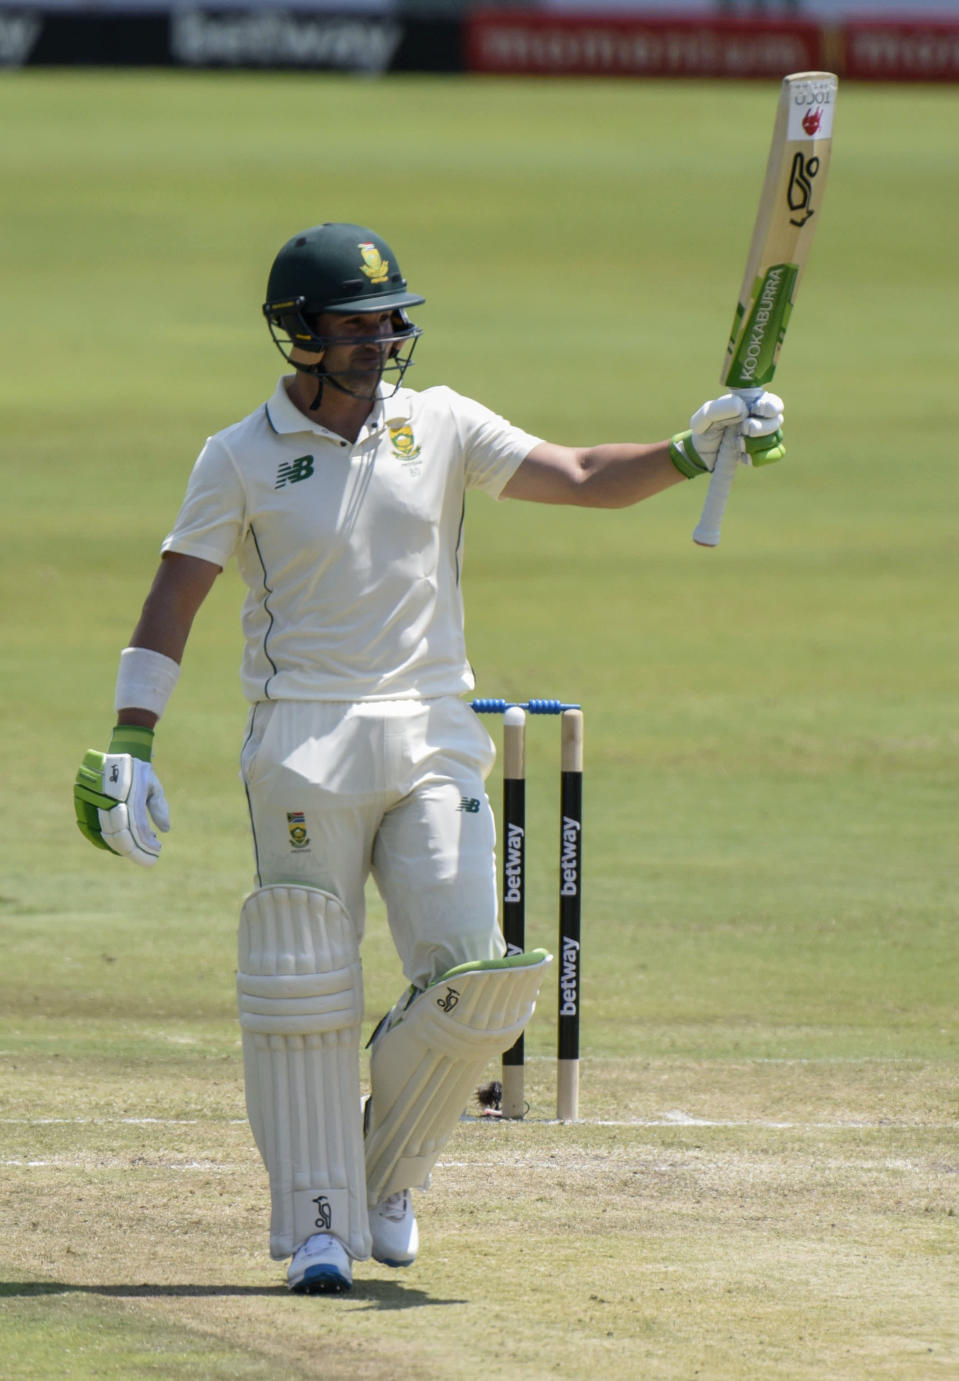 South Africa's Dean Elgar celebrates a 50, on day two of the first cricket test match between South Africa and Sri Lanka at Super Sport Park Stadium in Pretoria, South Africa, Sunday, Dec. 27, 2020. (AP Photo/Catherine Kotze)